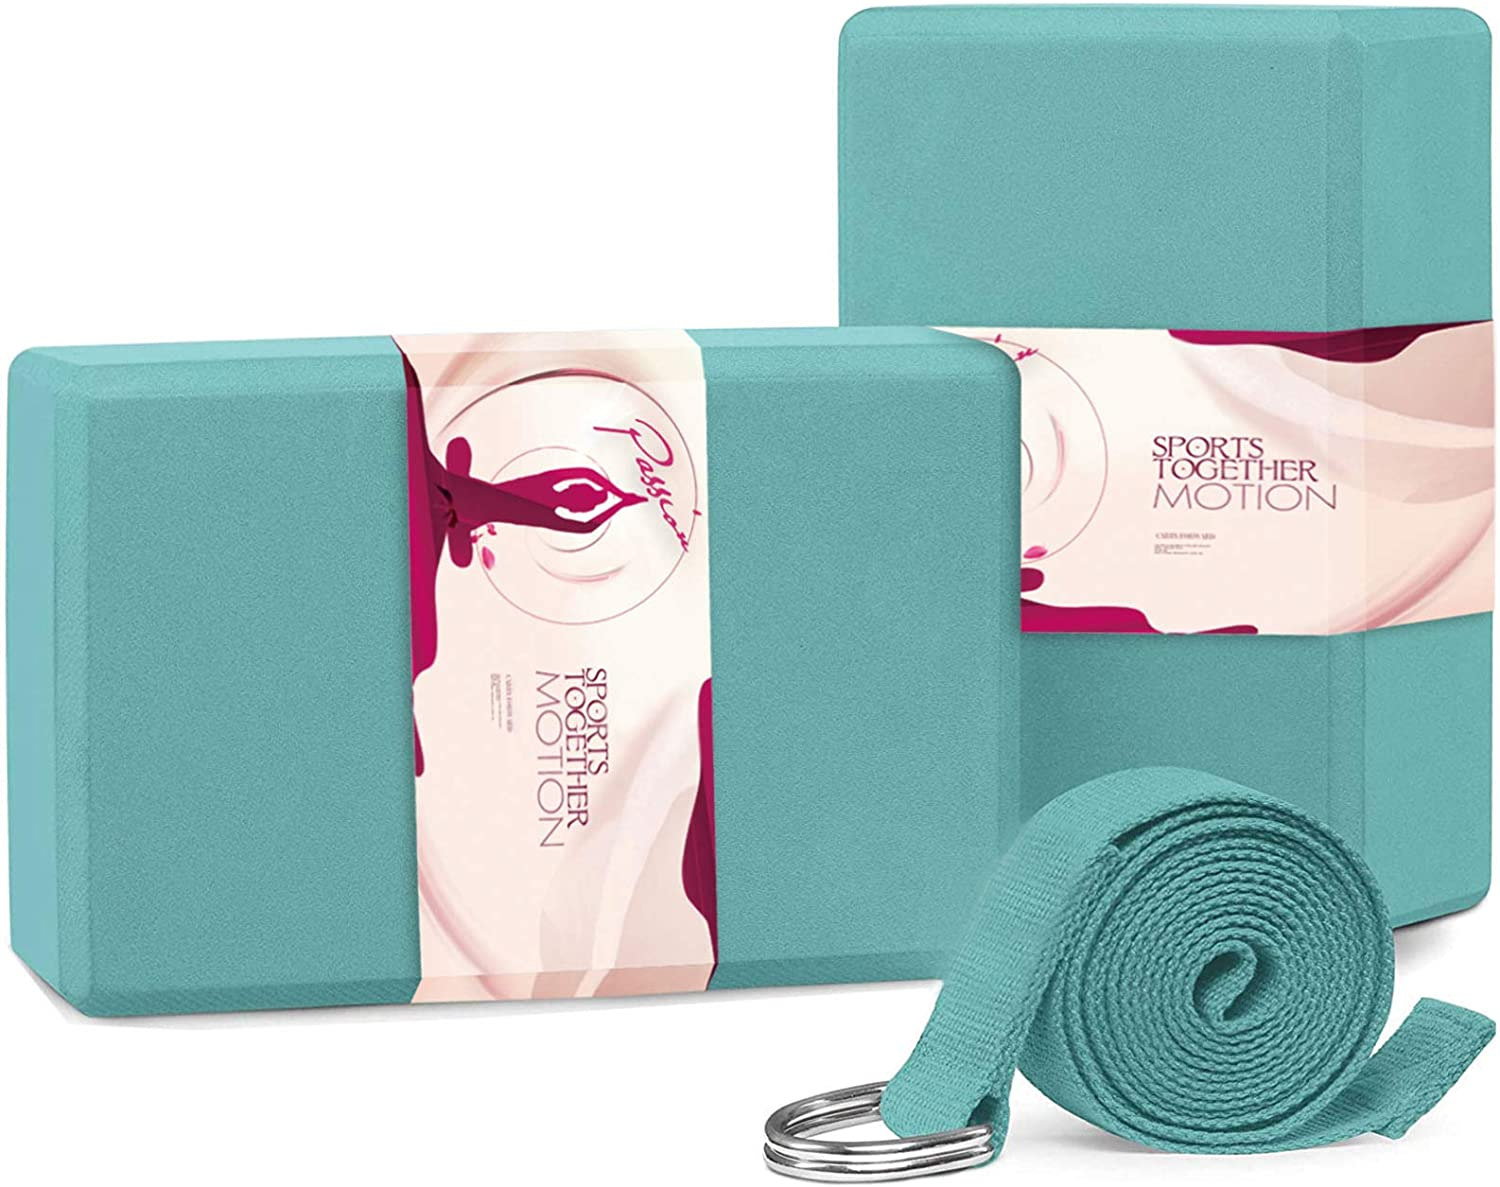 SAMYOGA Yoga Blocks 2 Pack with Strap High Density EVA Foam Light Weight Yoga Brick and New Convenient Form with Non-Slip Surface for Stretching and Flexibility